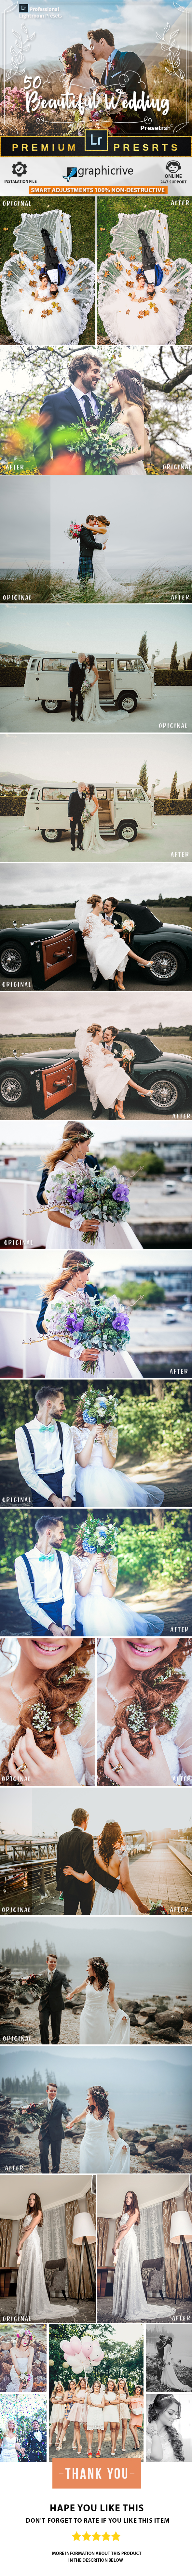 50 Pro Wedding Presets - Wedding Lightroom Presets